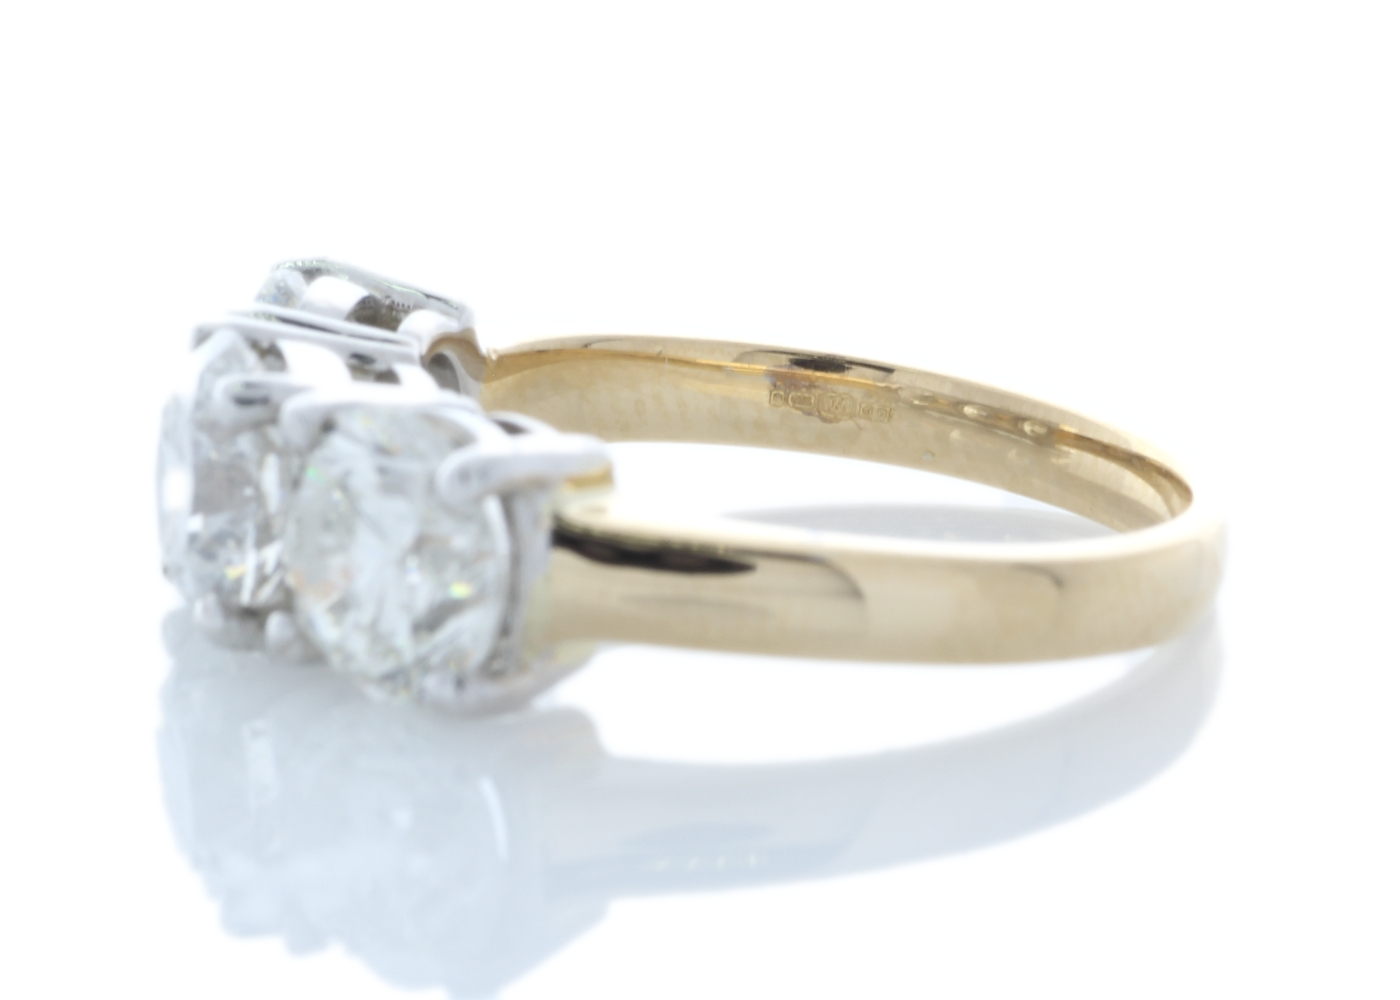 Lot 9 - 18ct Yellow Gold Three Stone Claw Set Diamond Ring 3.37 Carats